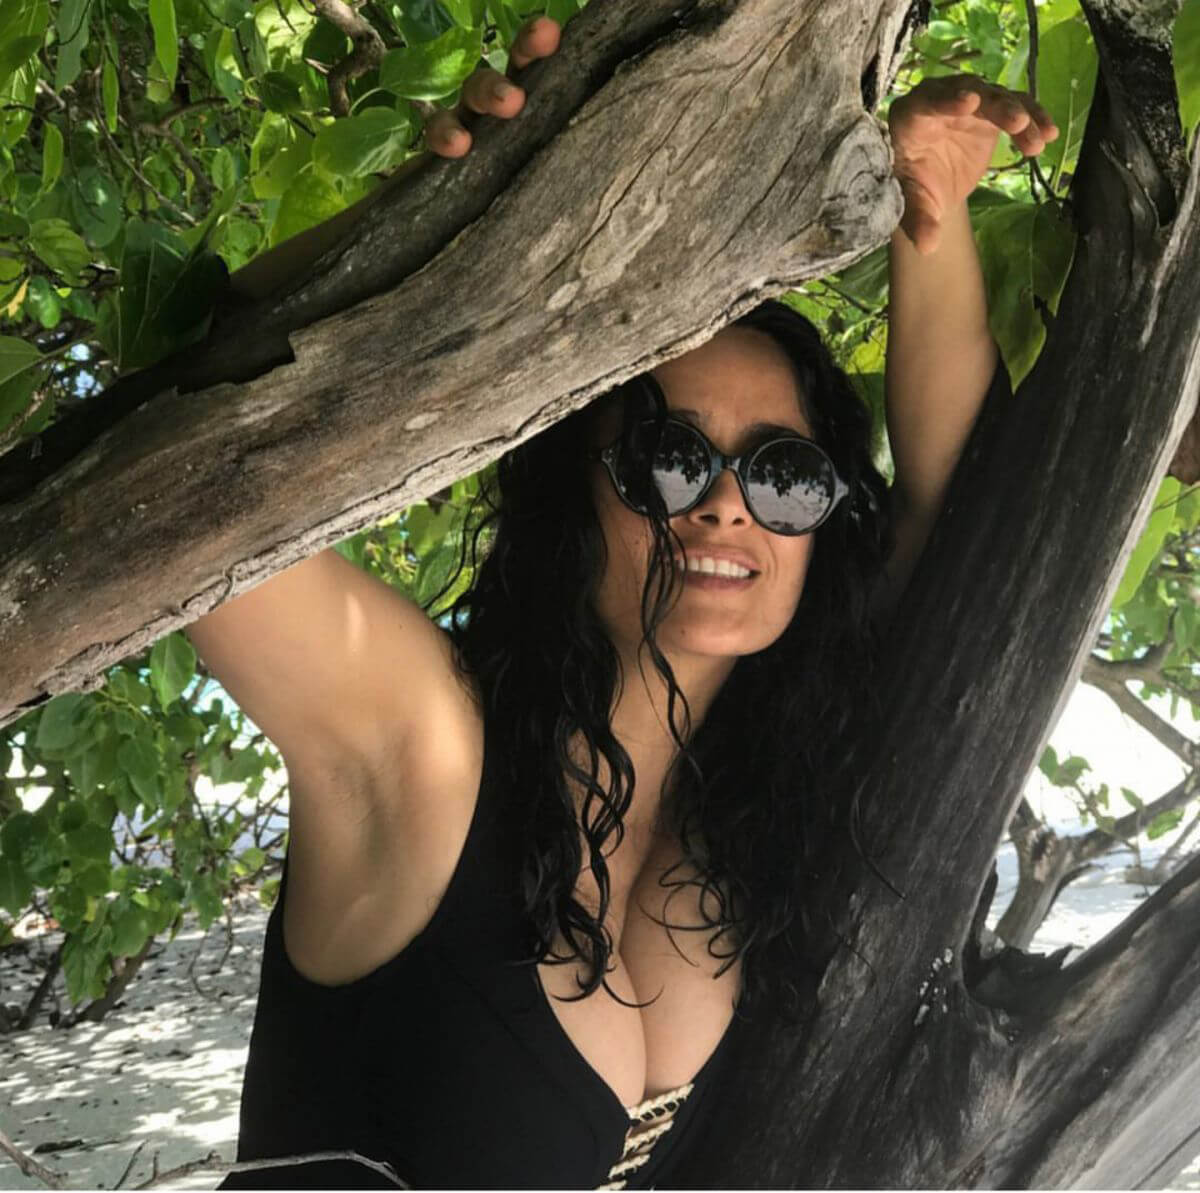 Salma Hayek in Swimsuit on Instagram Picture 2018/12/29 1